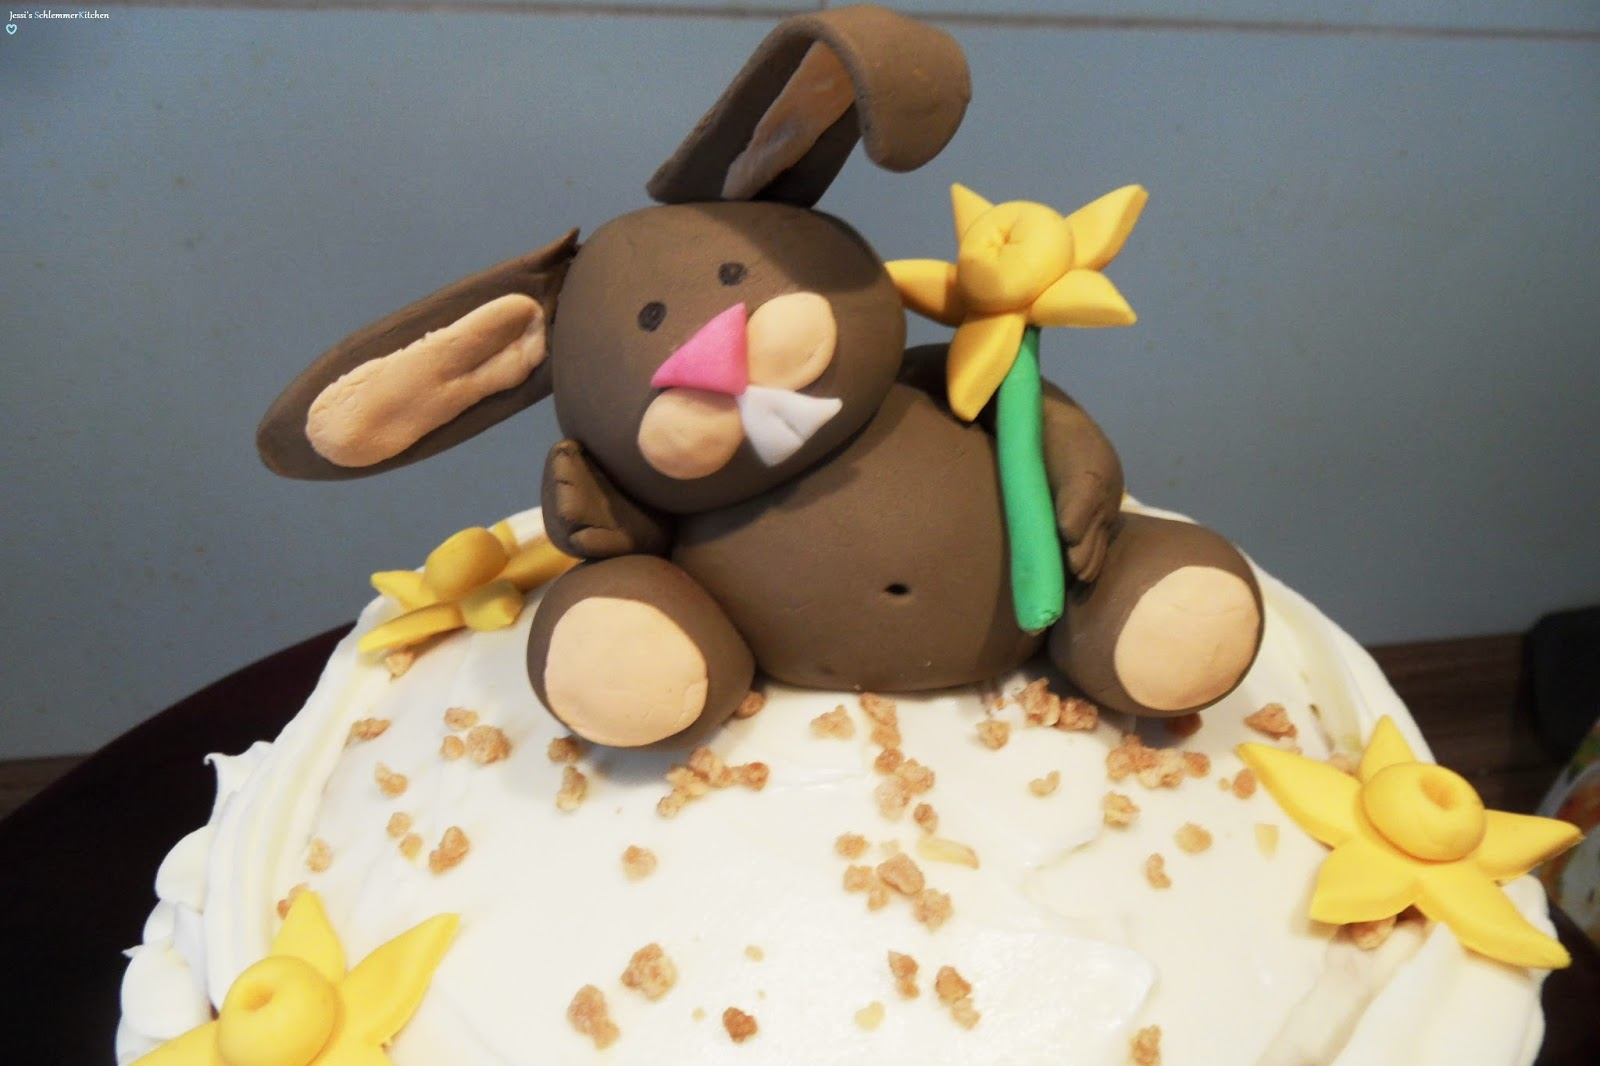 Image:Ostertorte-Hase